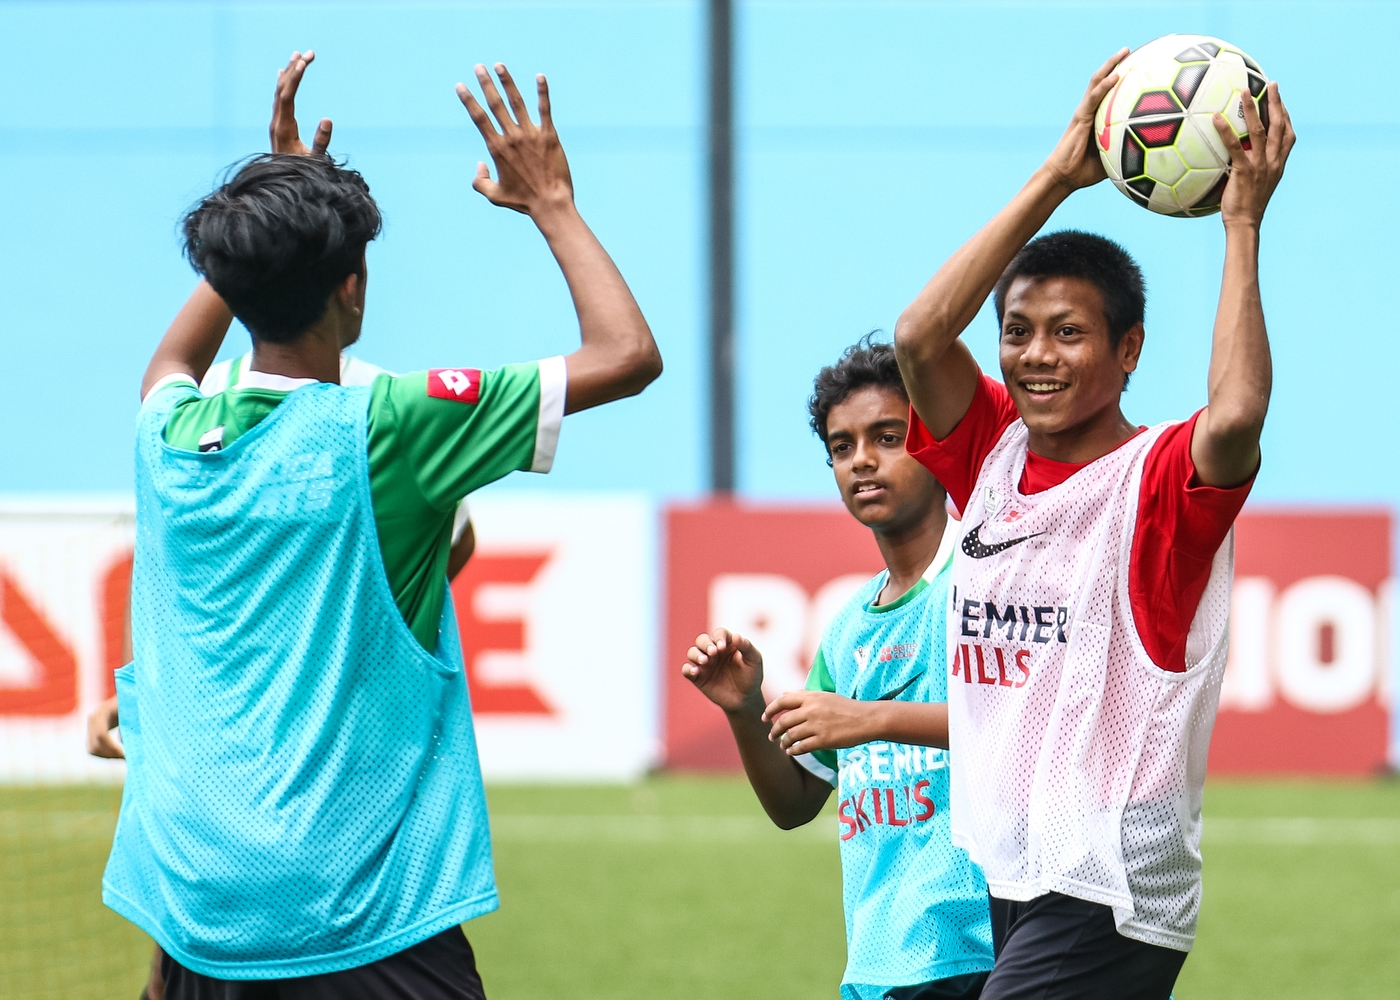 Sportcares - A Foundation and Movement to Empower the Vulnerable through Sport - SPORT SINGAPORE